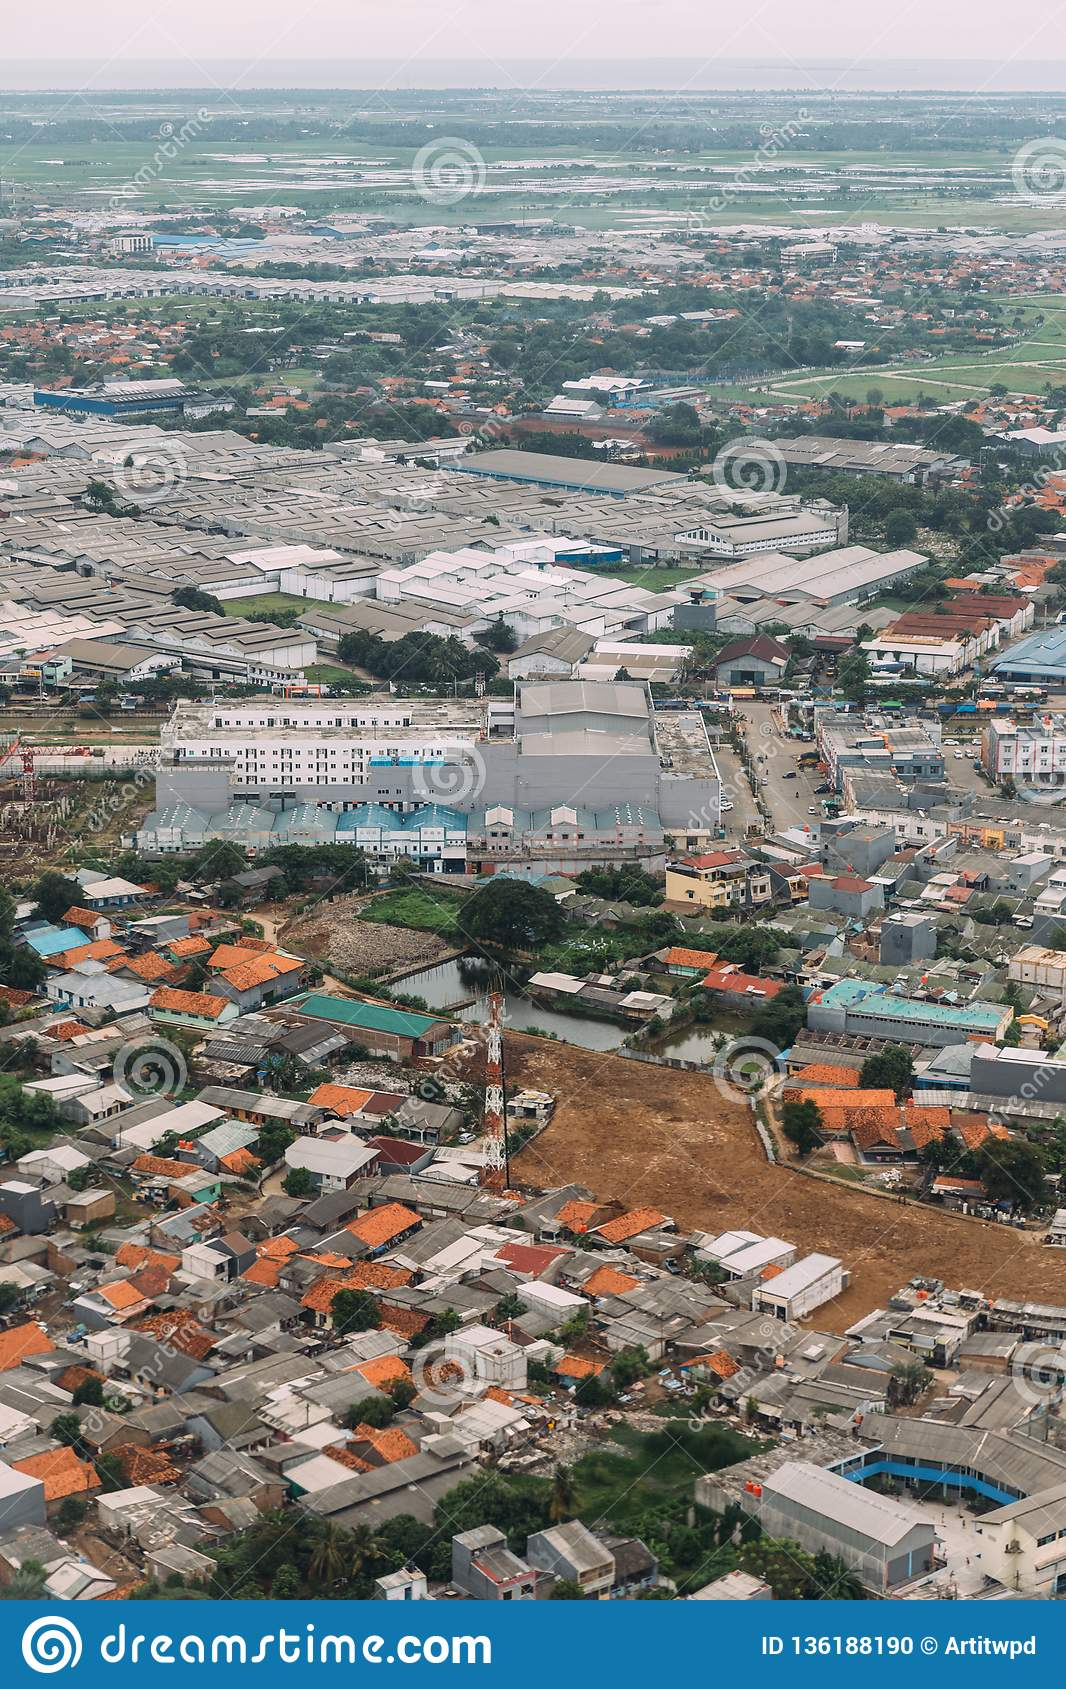 Industrial area in uptown of Jakarta, Indonesia. Aerial view of factories and houses from airplane